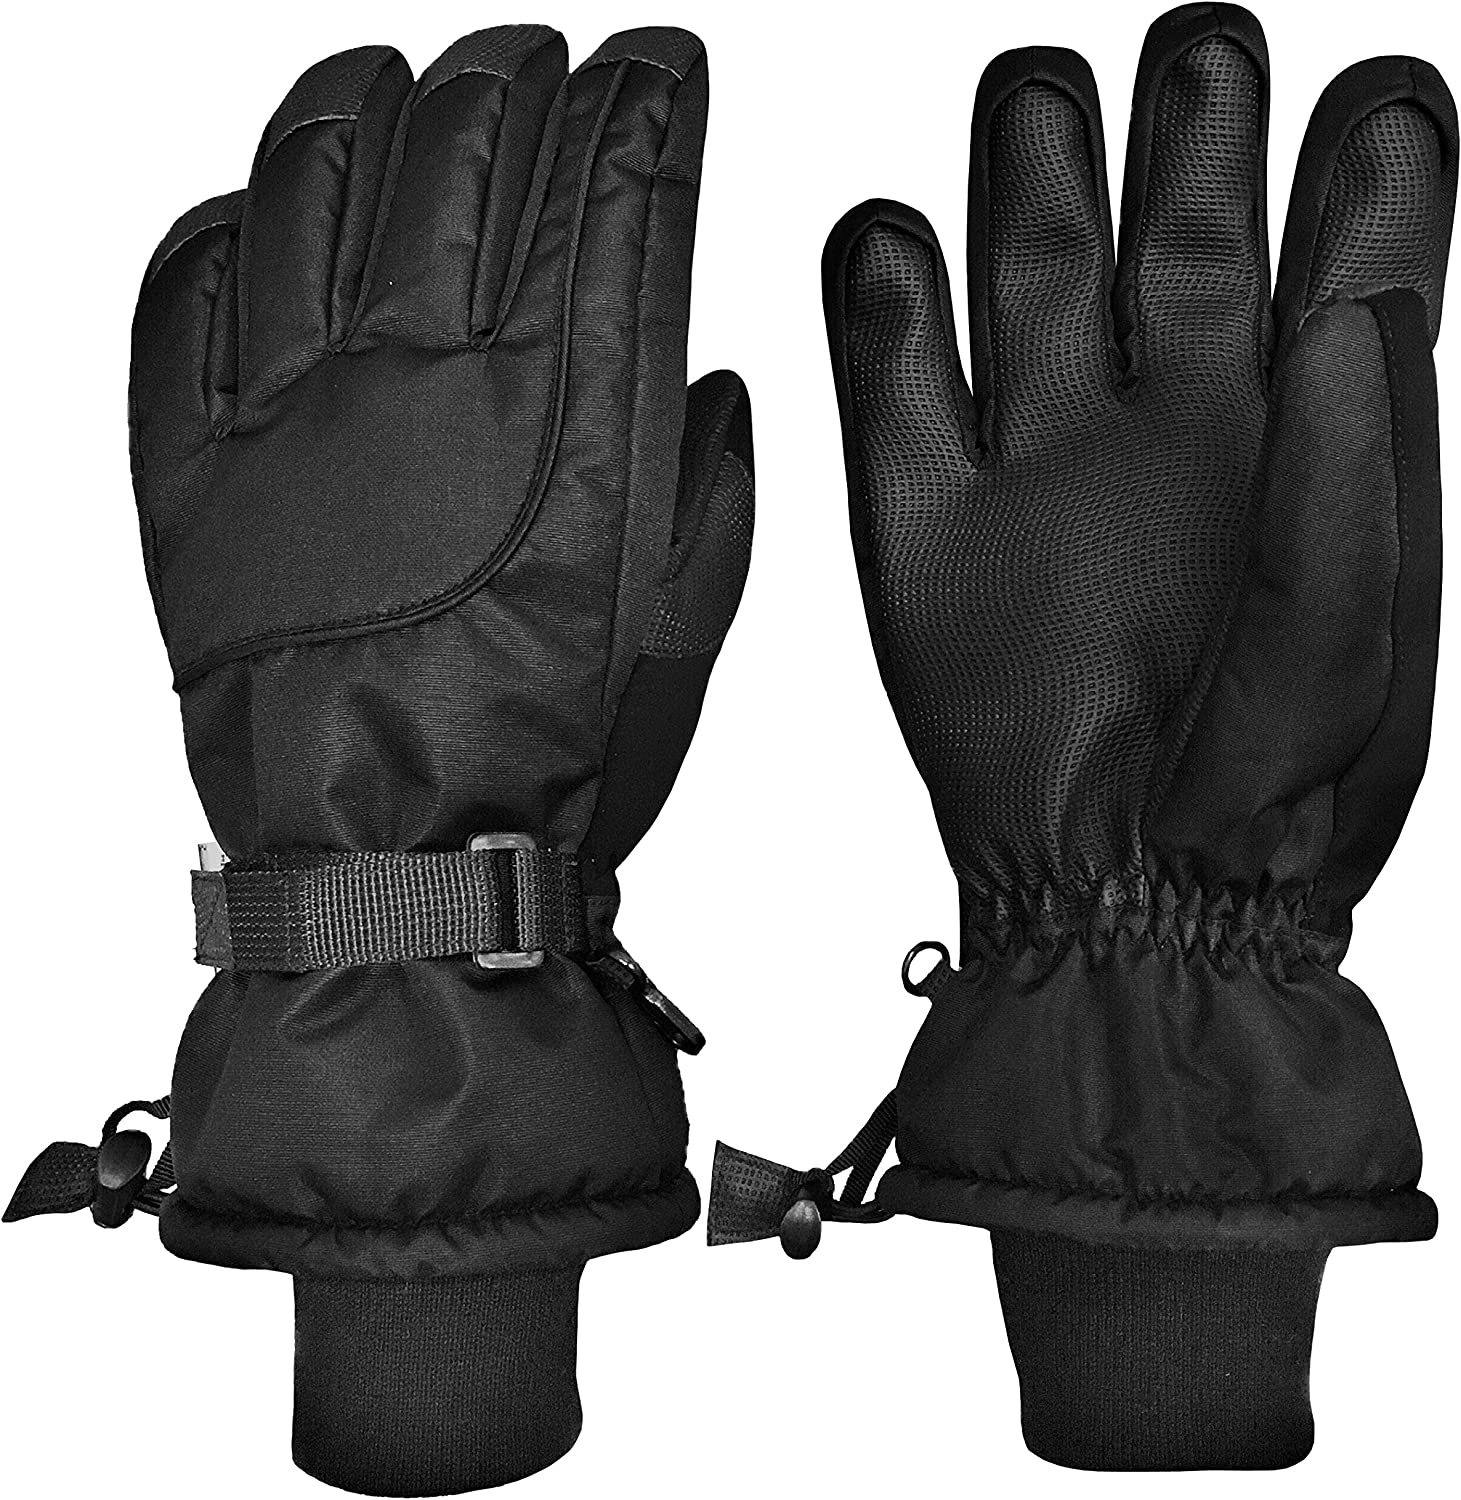 N'Ice Caps Kids Extreme Cold Weather 100 Gram Thinsulate Waterproof Ski Gloves: Clothing